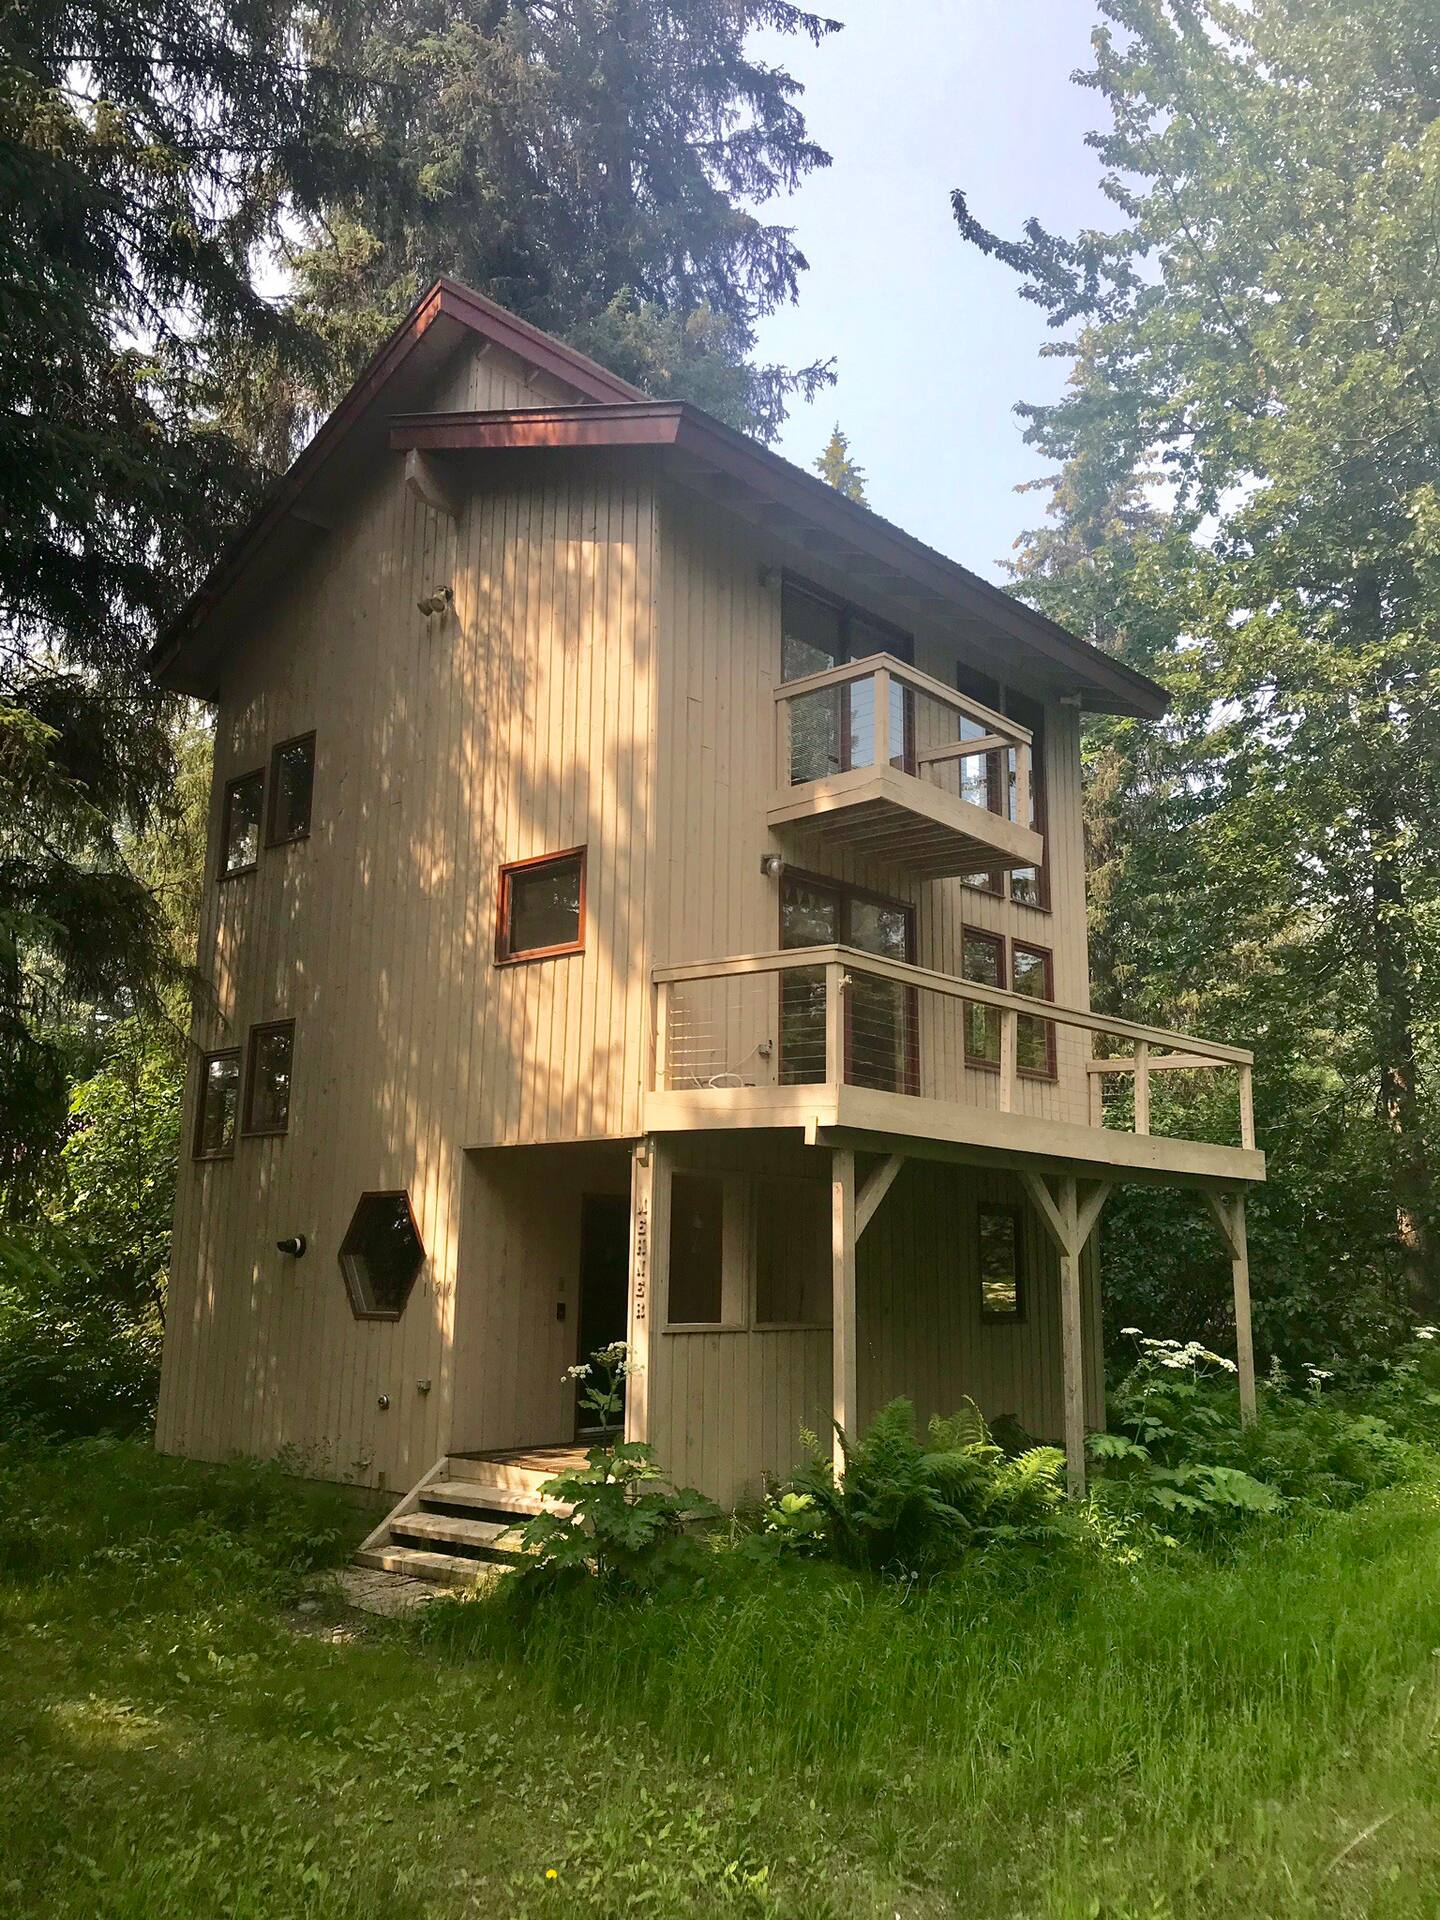 Large cabin painted beige with brown trim around every window, with balcony. One of the nicest Alaska rental cabins.